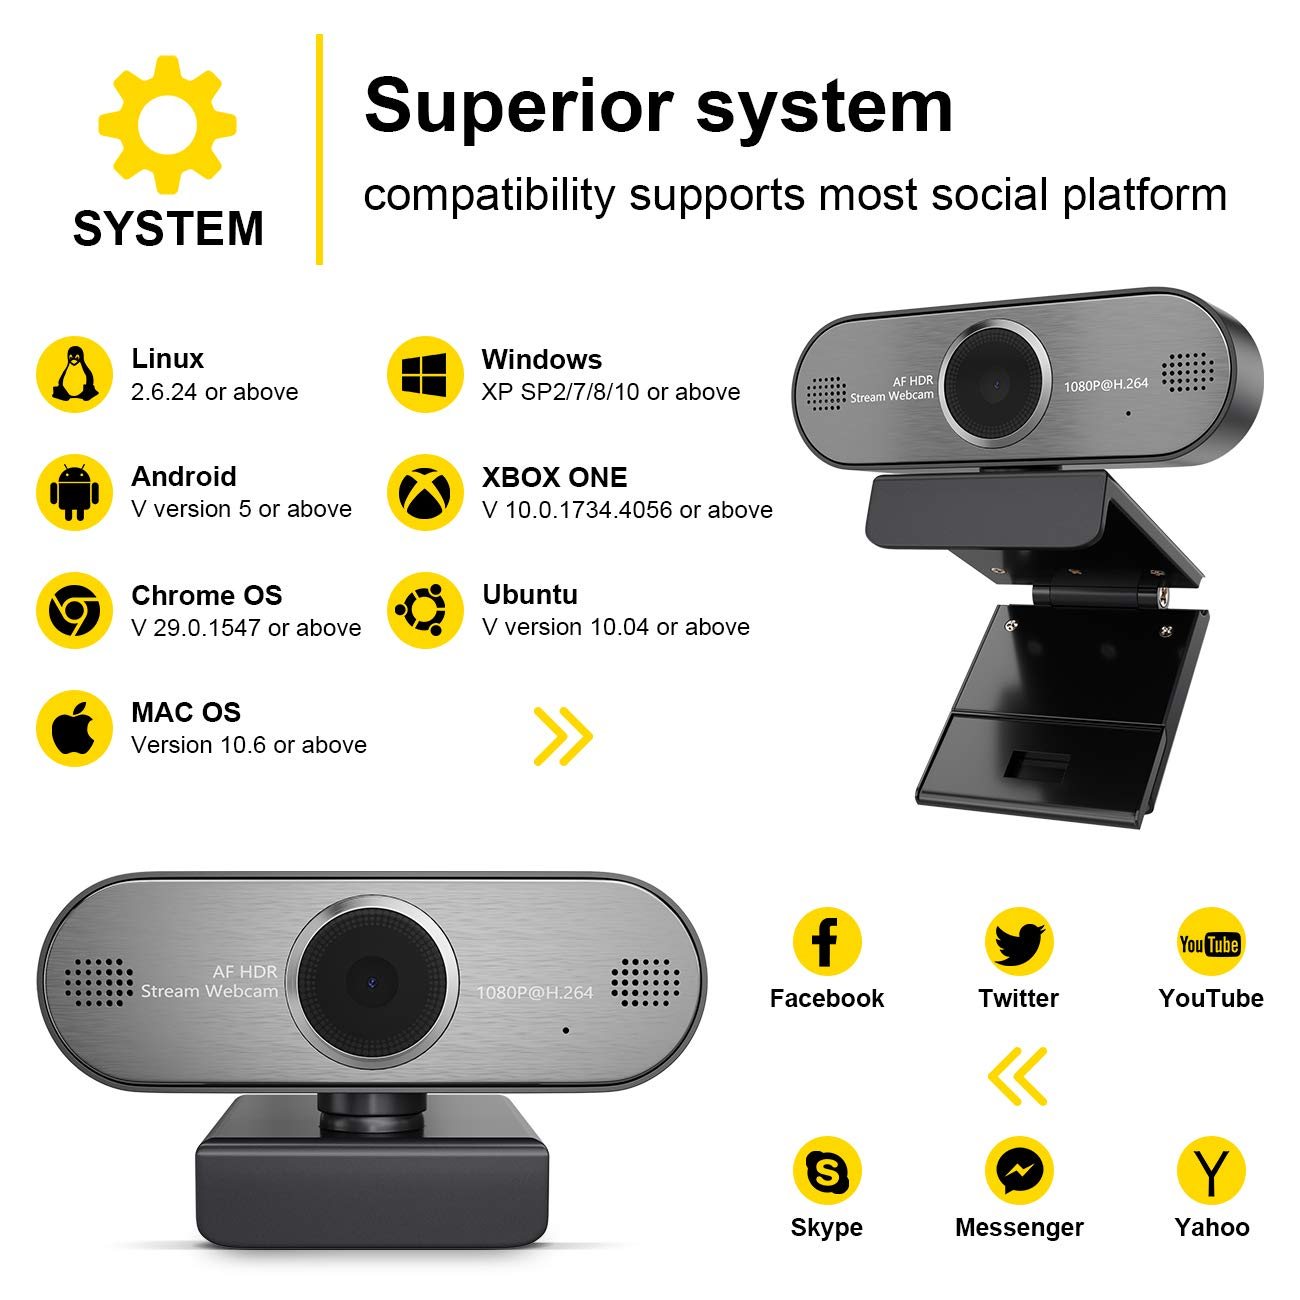 HD Pro Stream Webcam 1080P Auto Focus Web Camera with Mic USB Widescreen  for Streaming and Recording, Suitable for Skype, YouTube, Twitch for PC,